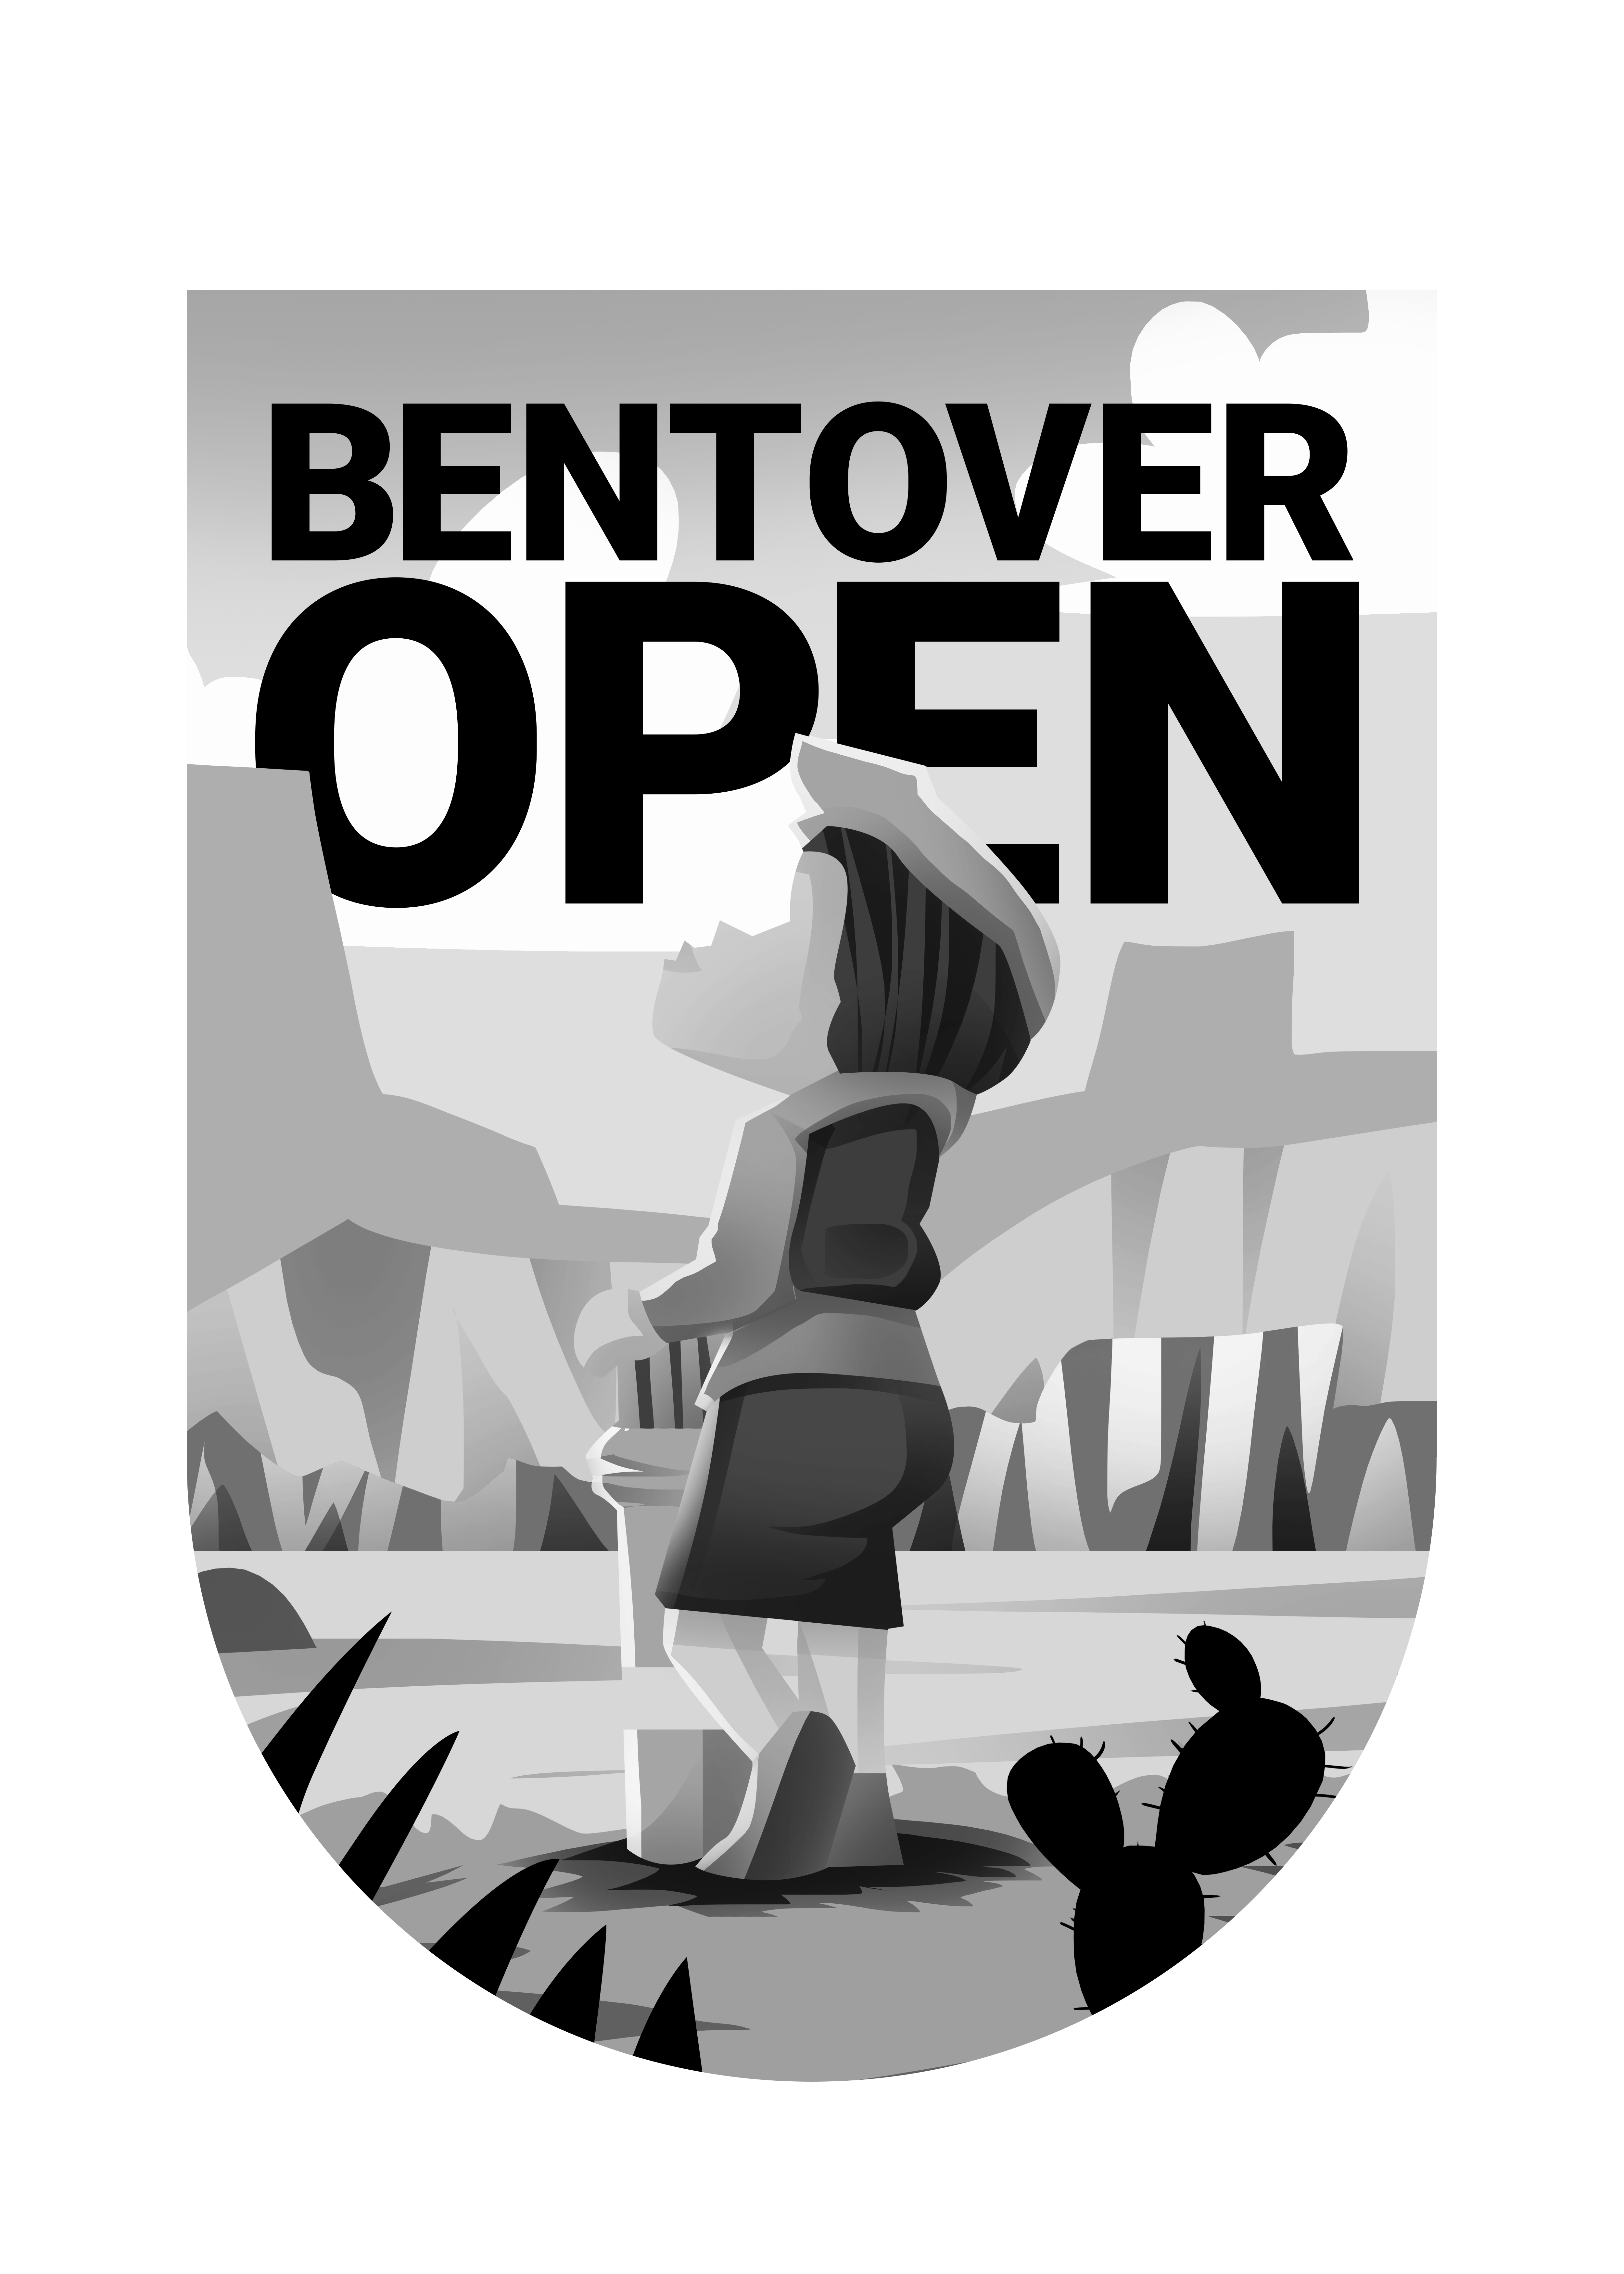 Cool Badge Design for Annual Golf Tourney